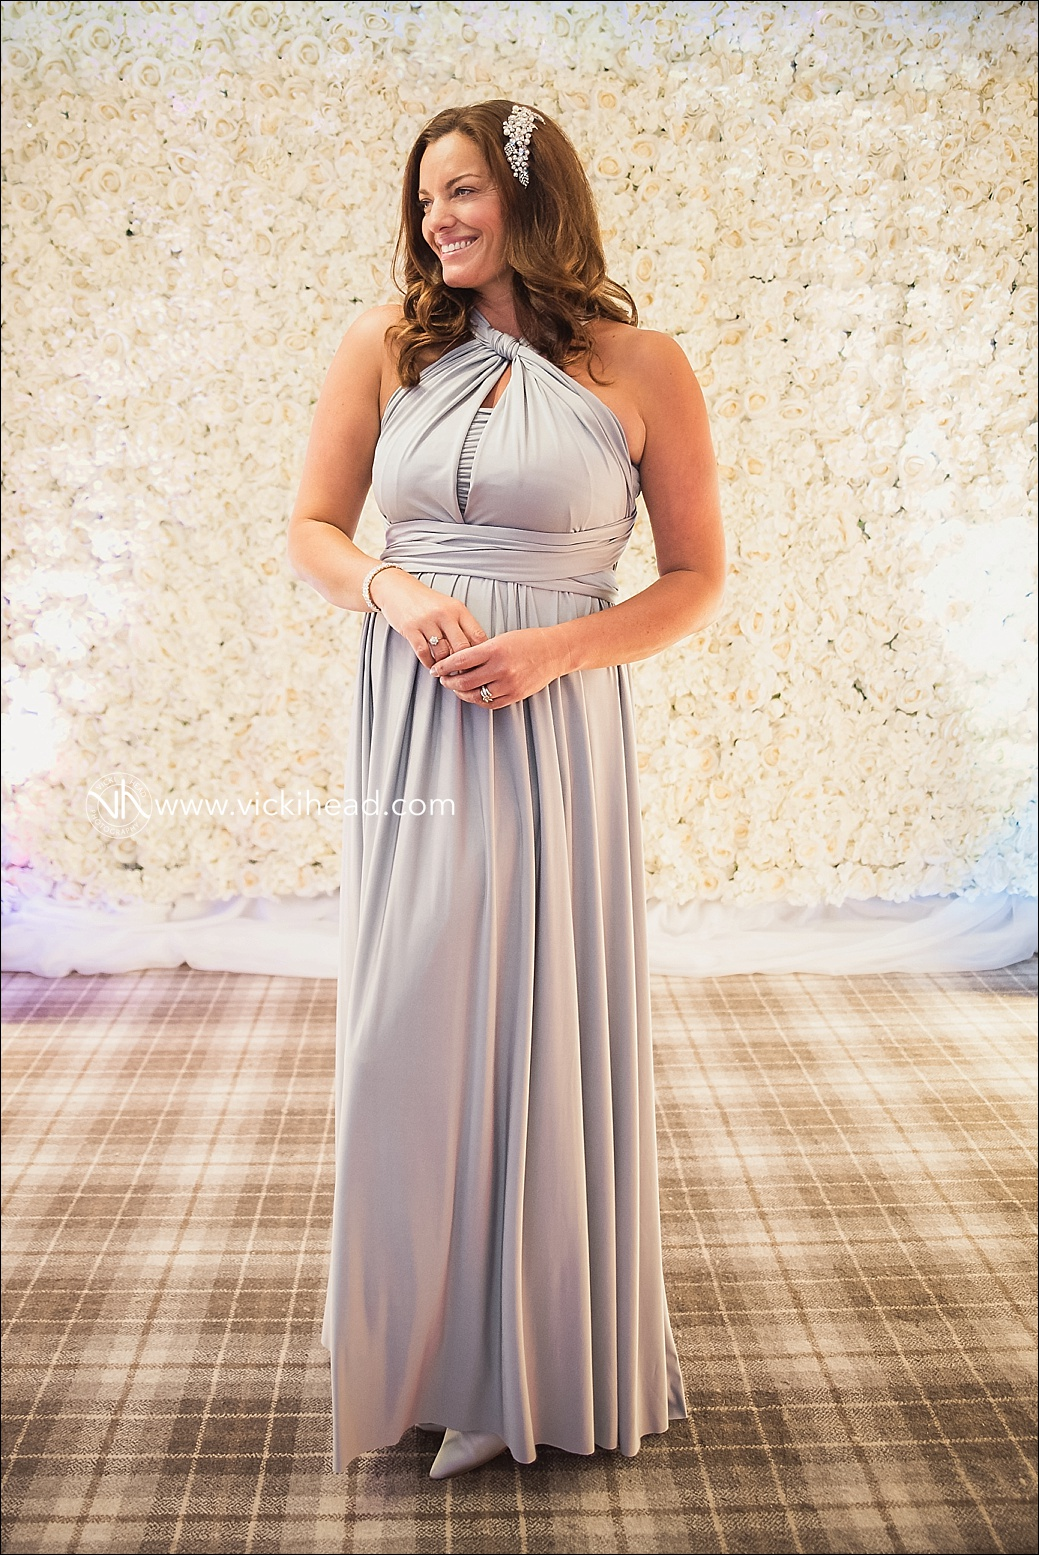 Zoe modelling a dress from The Ivory Room Bridal Boutique